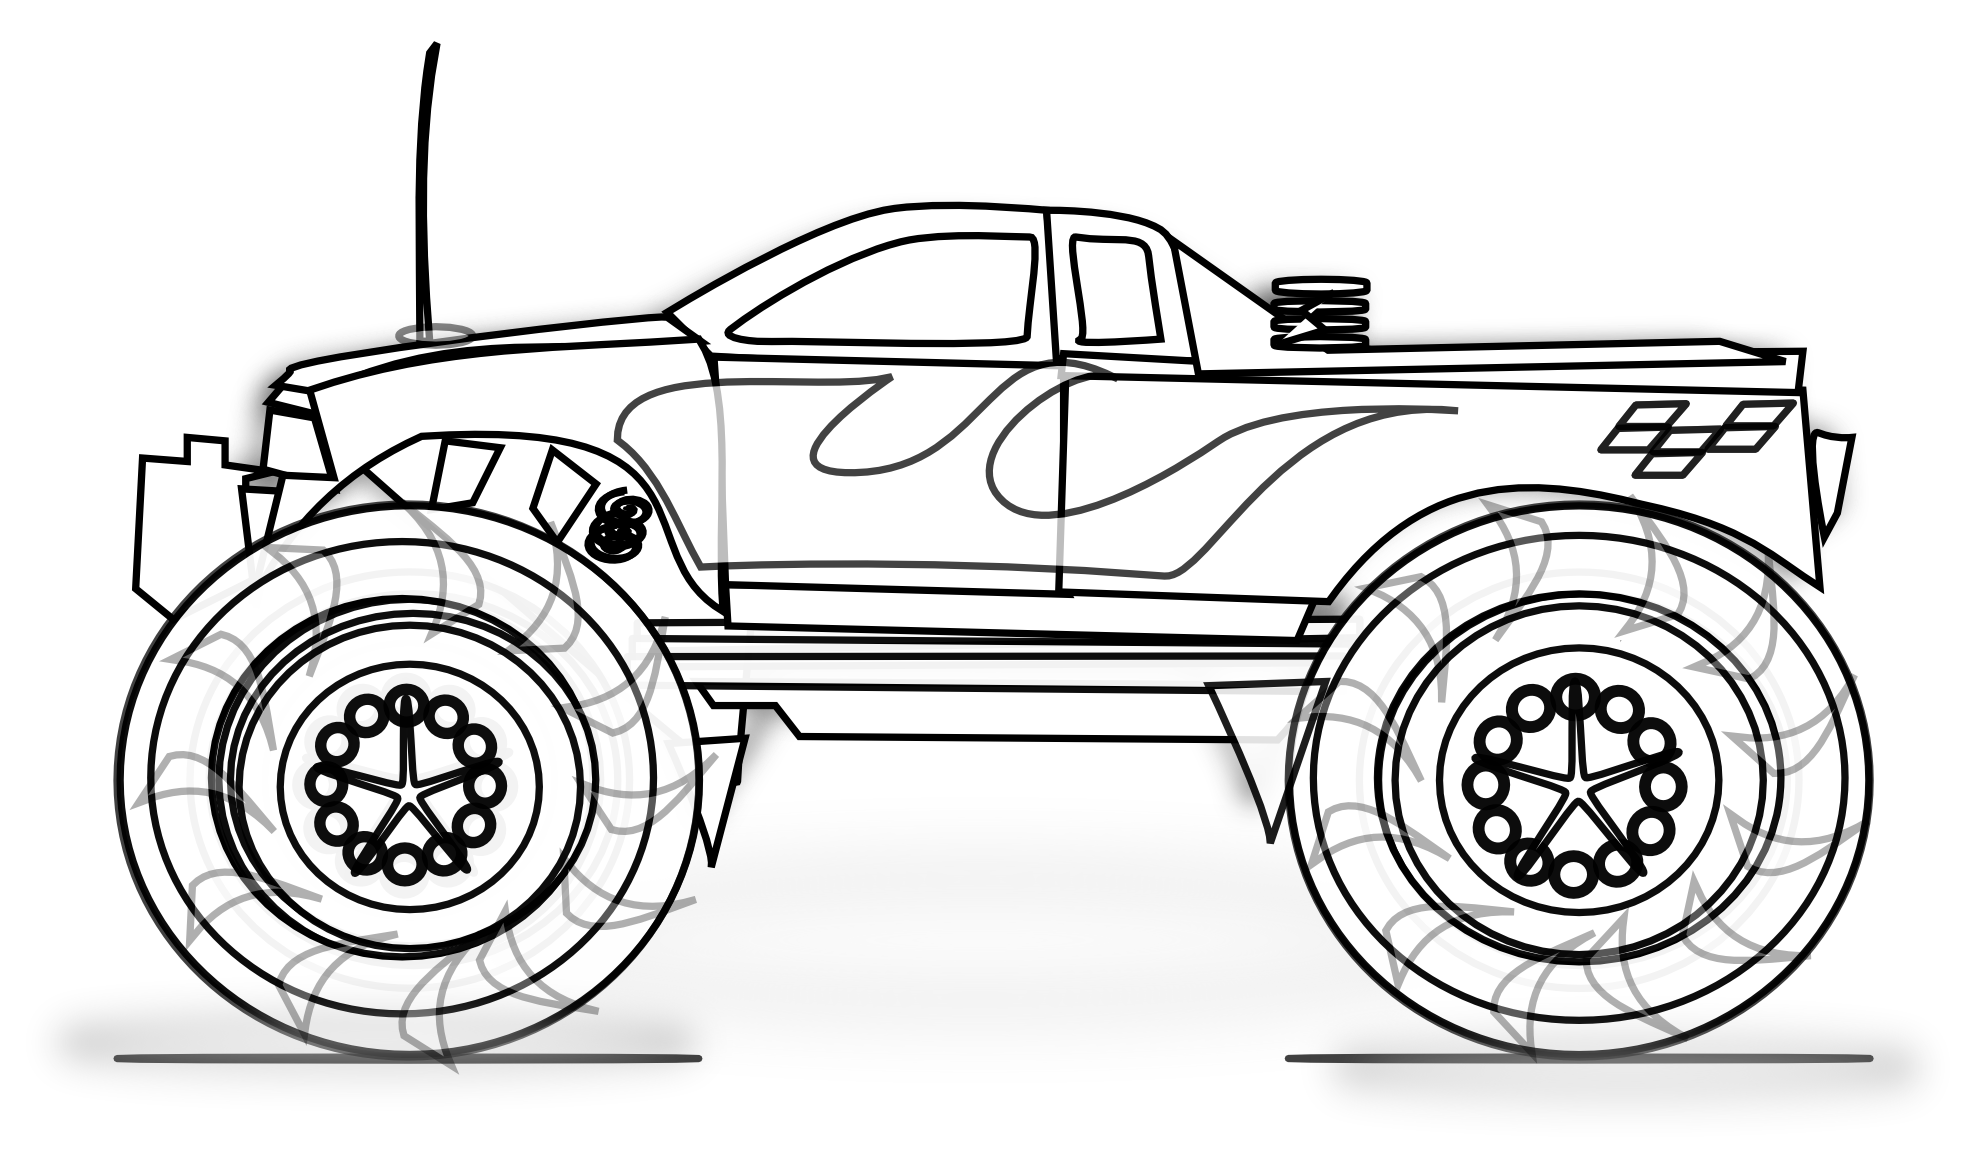 monster truck printable coloring pages - Monster Truck Coloring Pages Easy